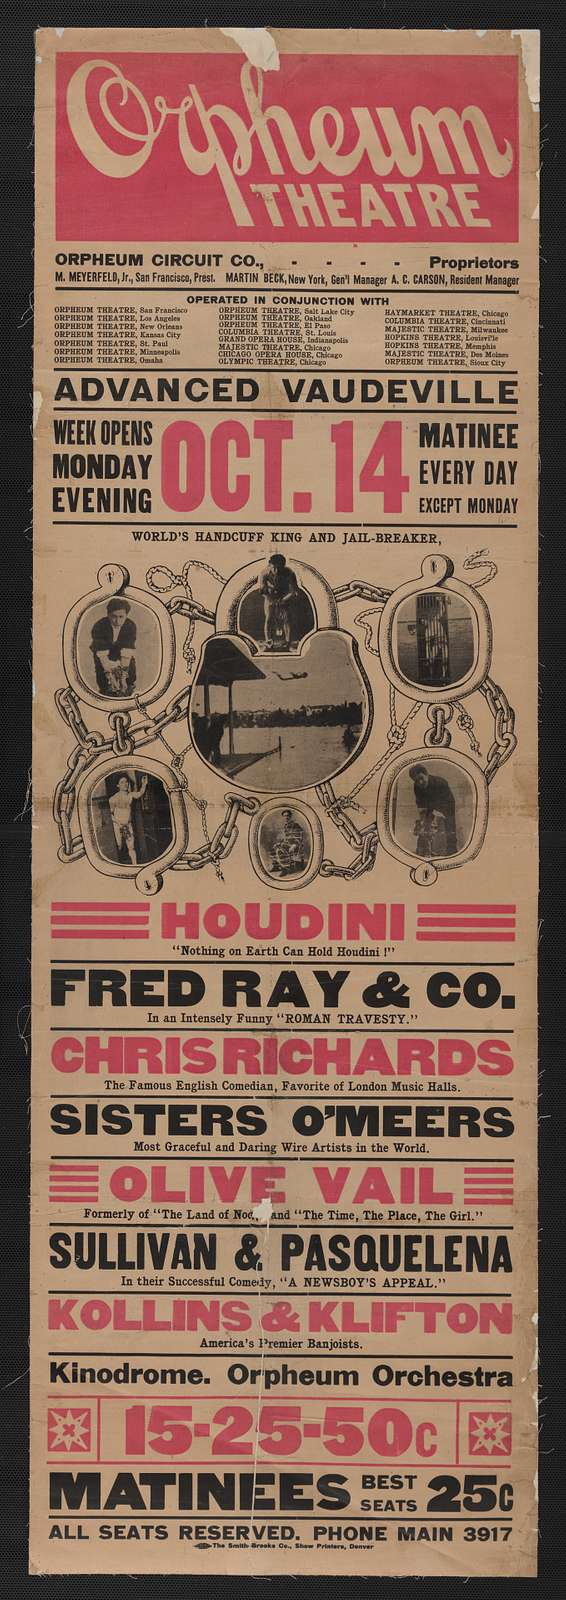 """Houdini, nothing on earth can hold Houdini! Fred Ray & Co. in an intensely funny """"Roman travesty"""" ...."""